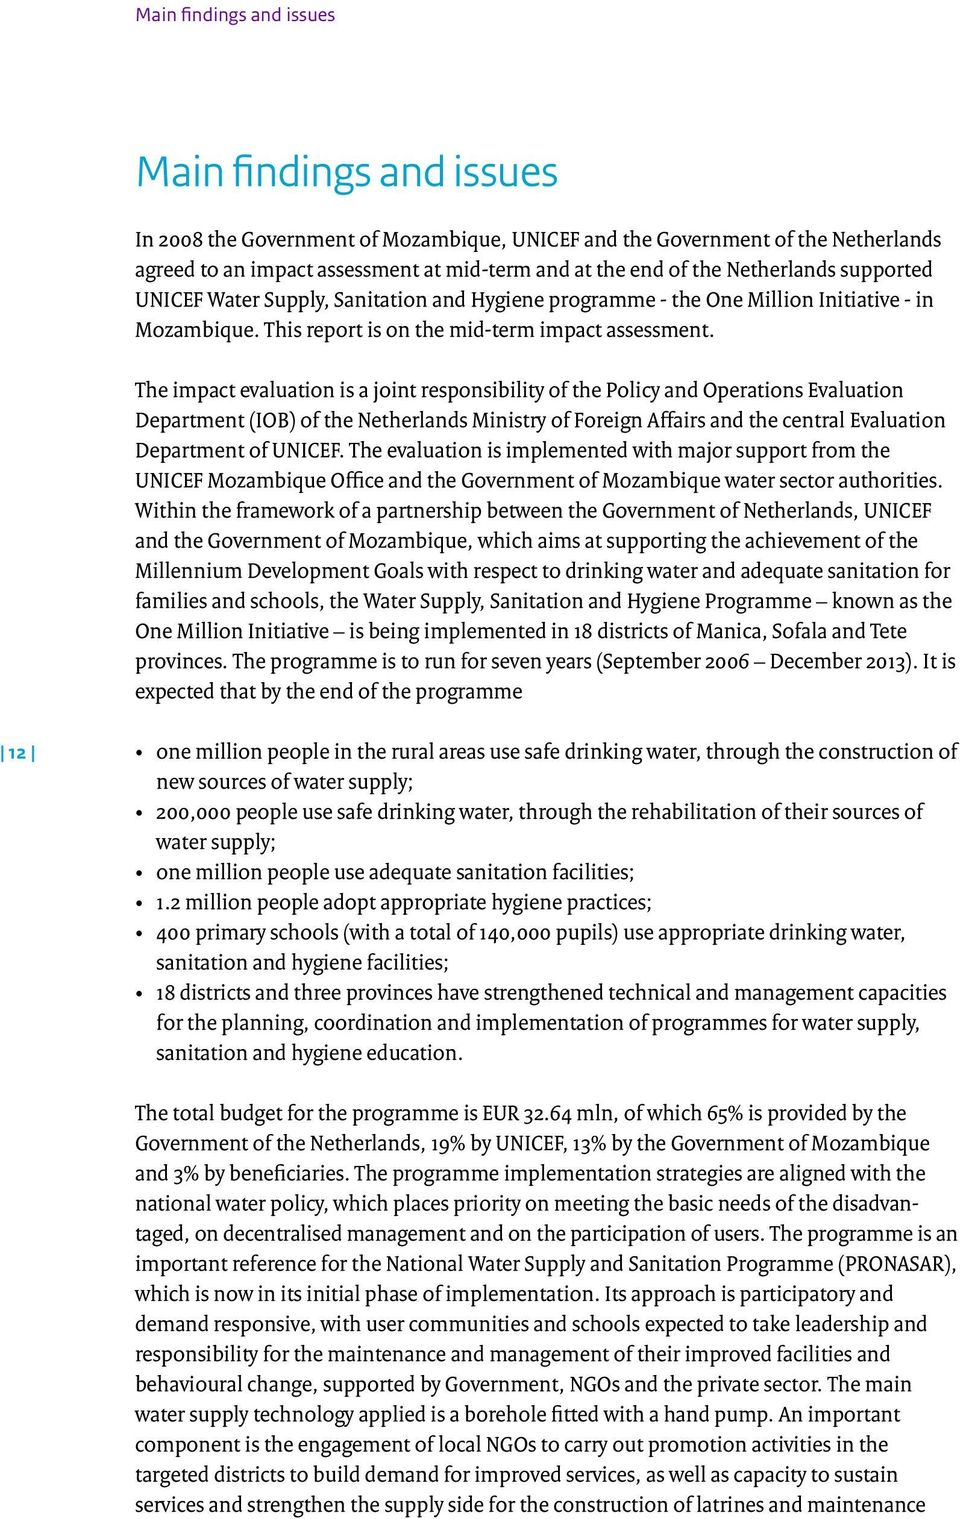 The impact evaluation is a joint responsibility of the Policy and Operations Evaluation Department (IOB) of the Netherlands Ministry of Foreign Affairs and the central Evaluation Department of UNICEF.